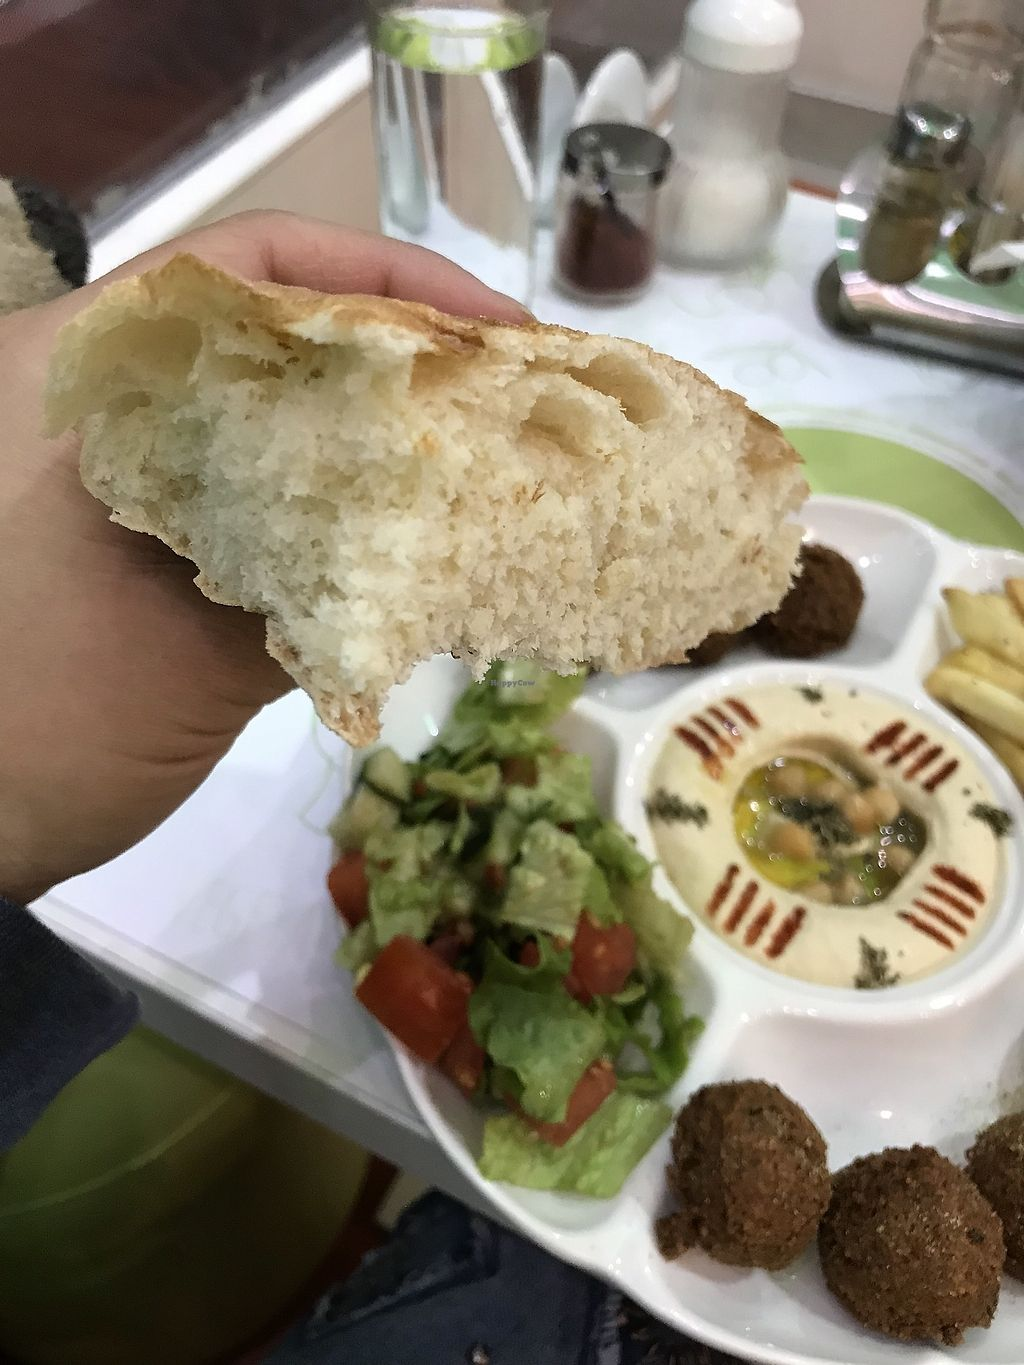 """Photo of Falafel  by <a href=""""/members/profile/balau"""">balau</a> <br/>wow, bread! <br/> February 3, 2018  - <a href='/contact/abuse/image/74438/354379'>Report</a>"""